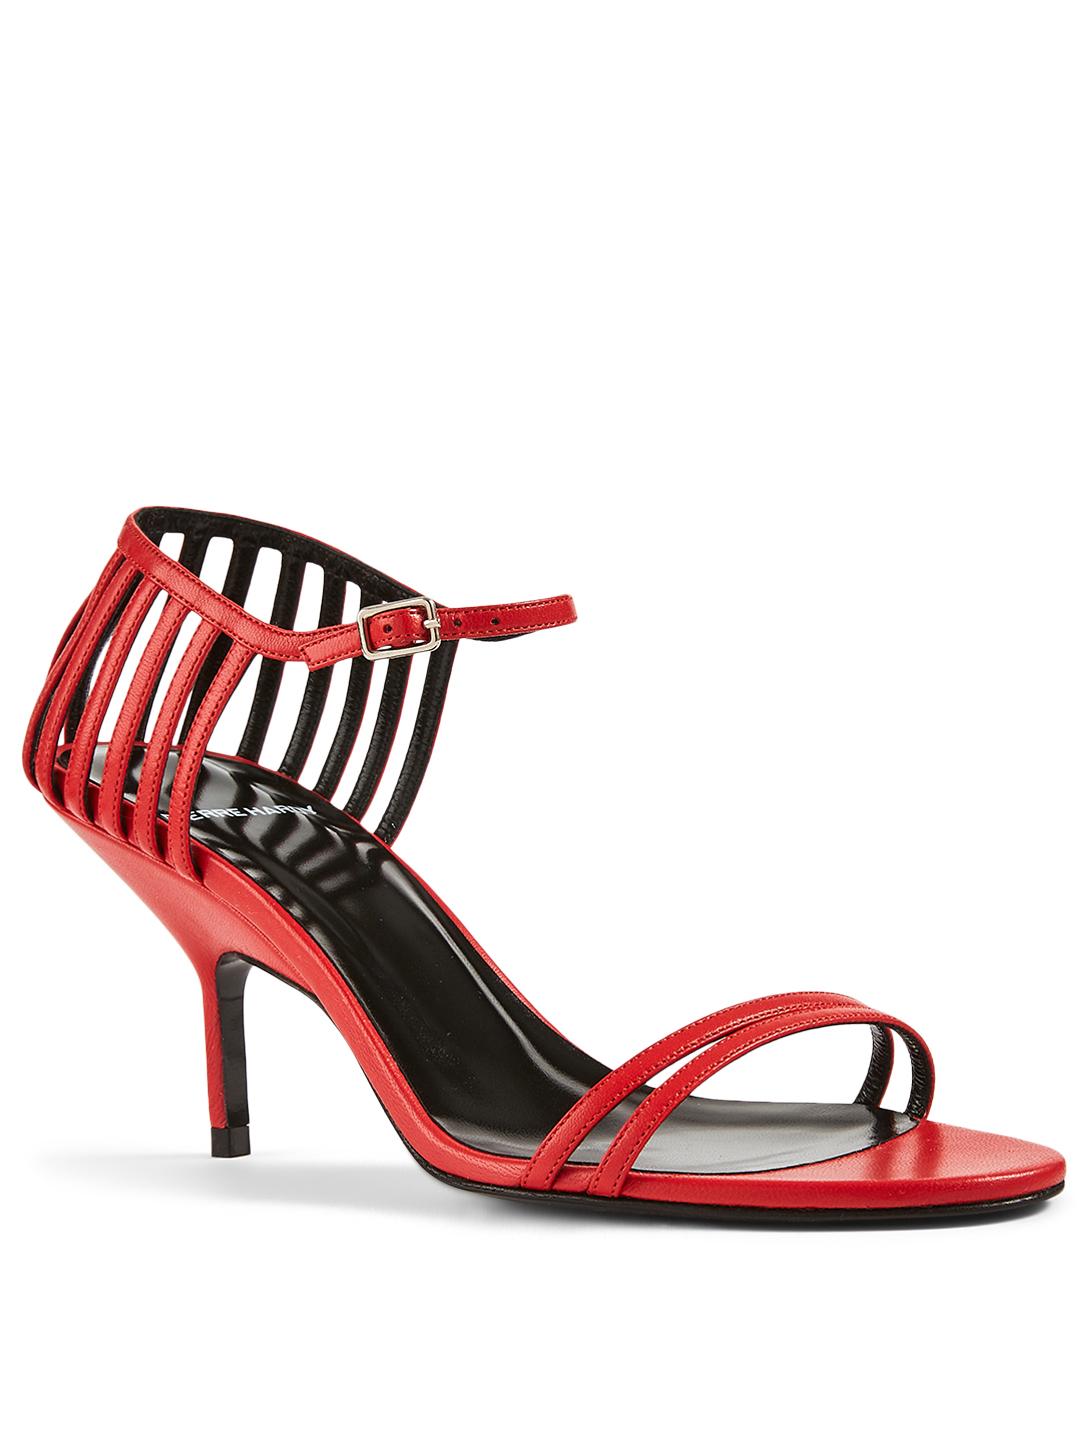 PIERRE HARDY Cage Leather Heeled Sandals Women's Red